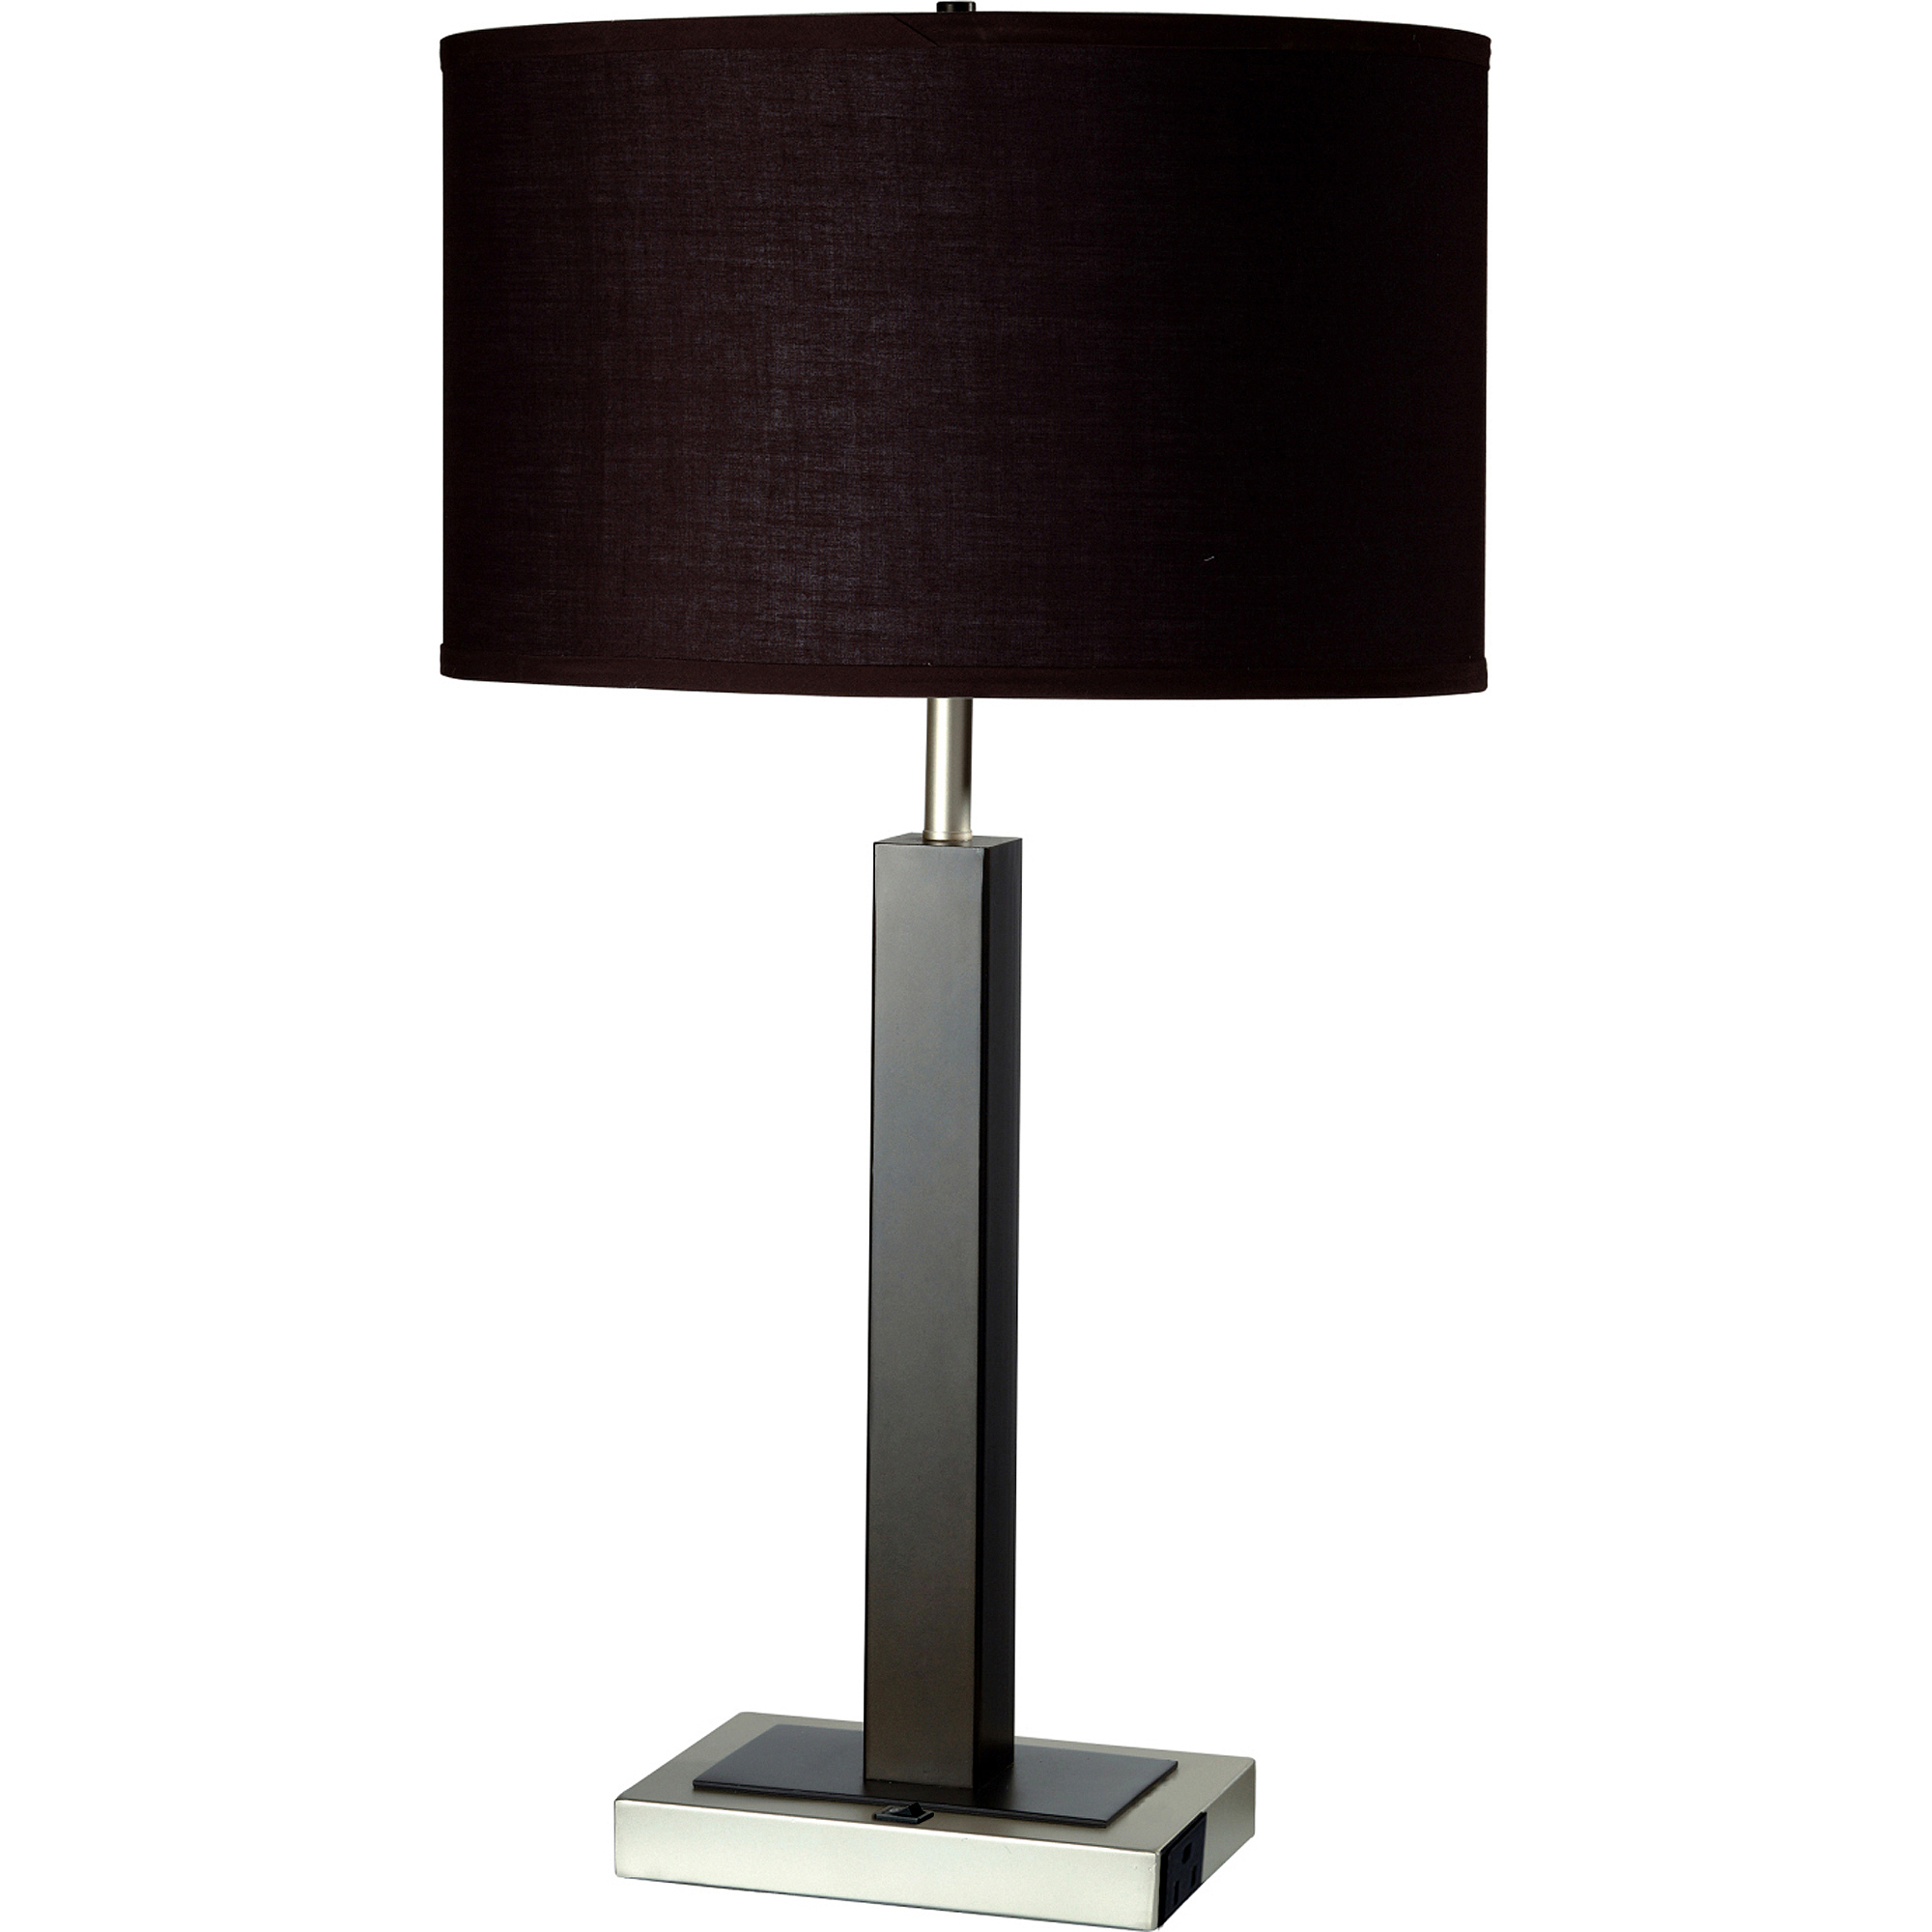 Delightful Metal Table Lamp With Convenient Outlet